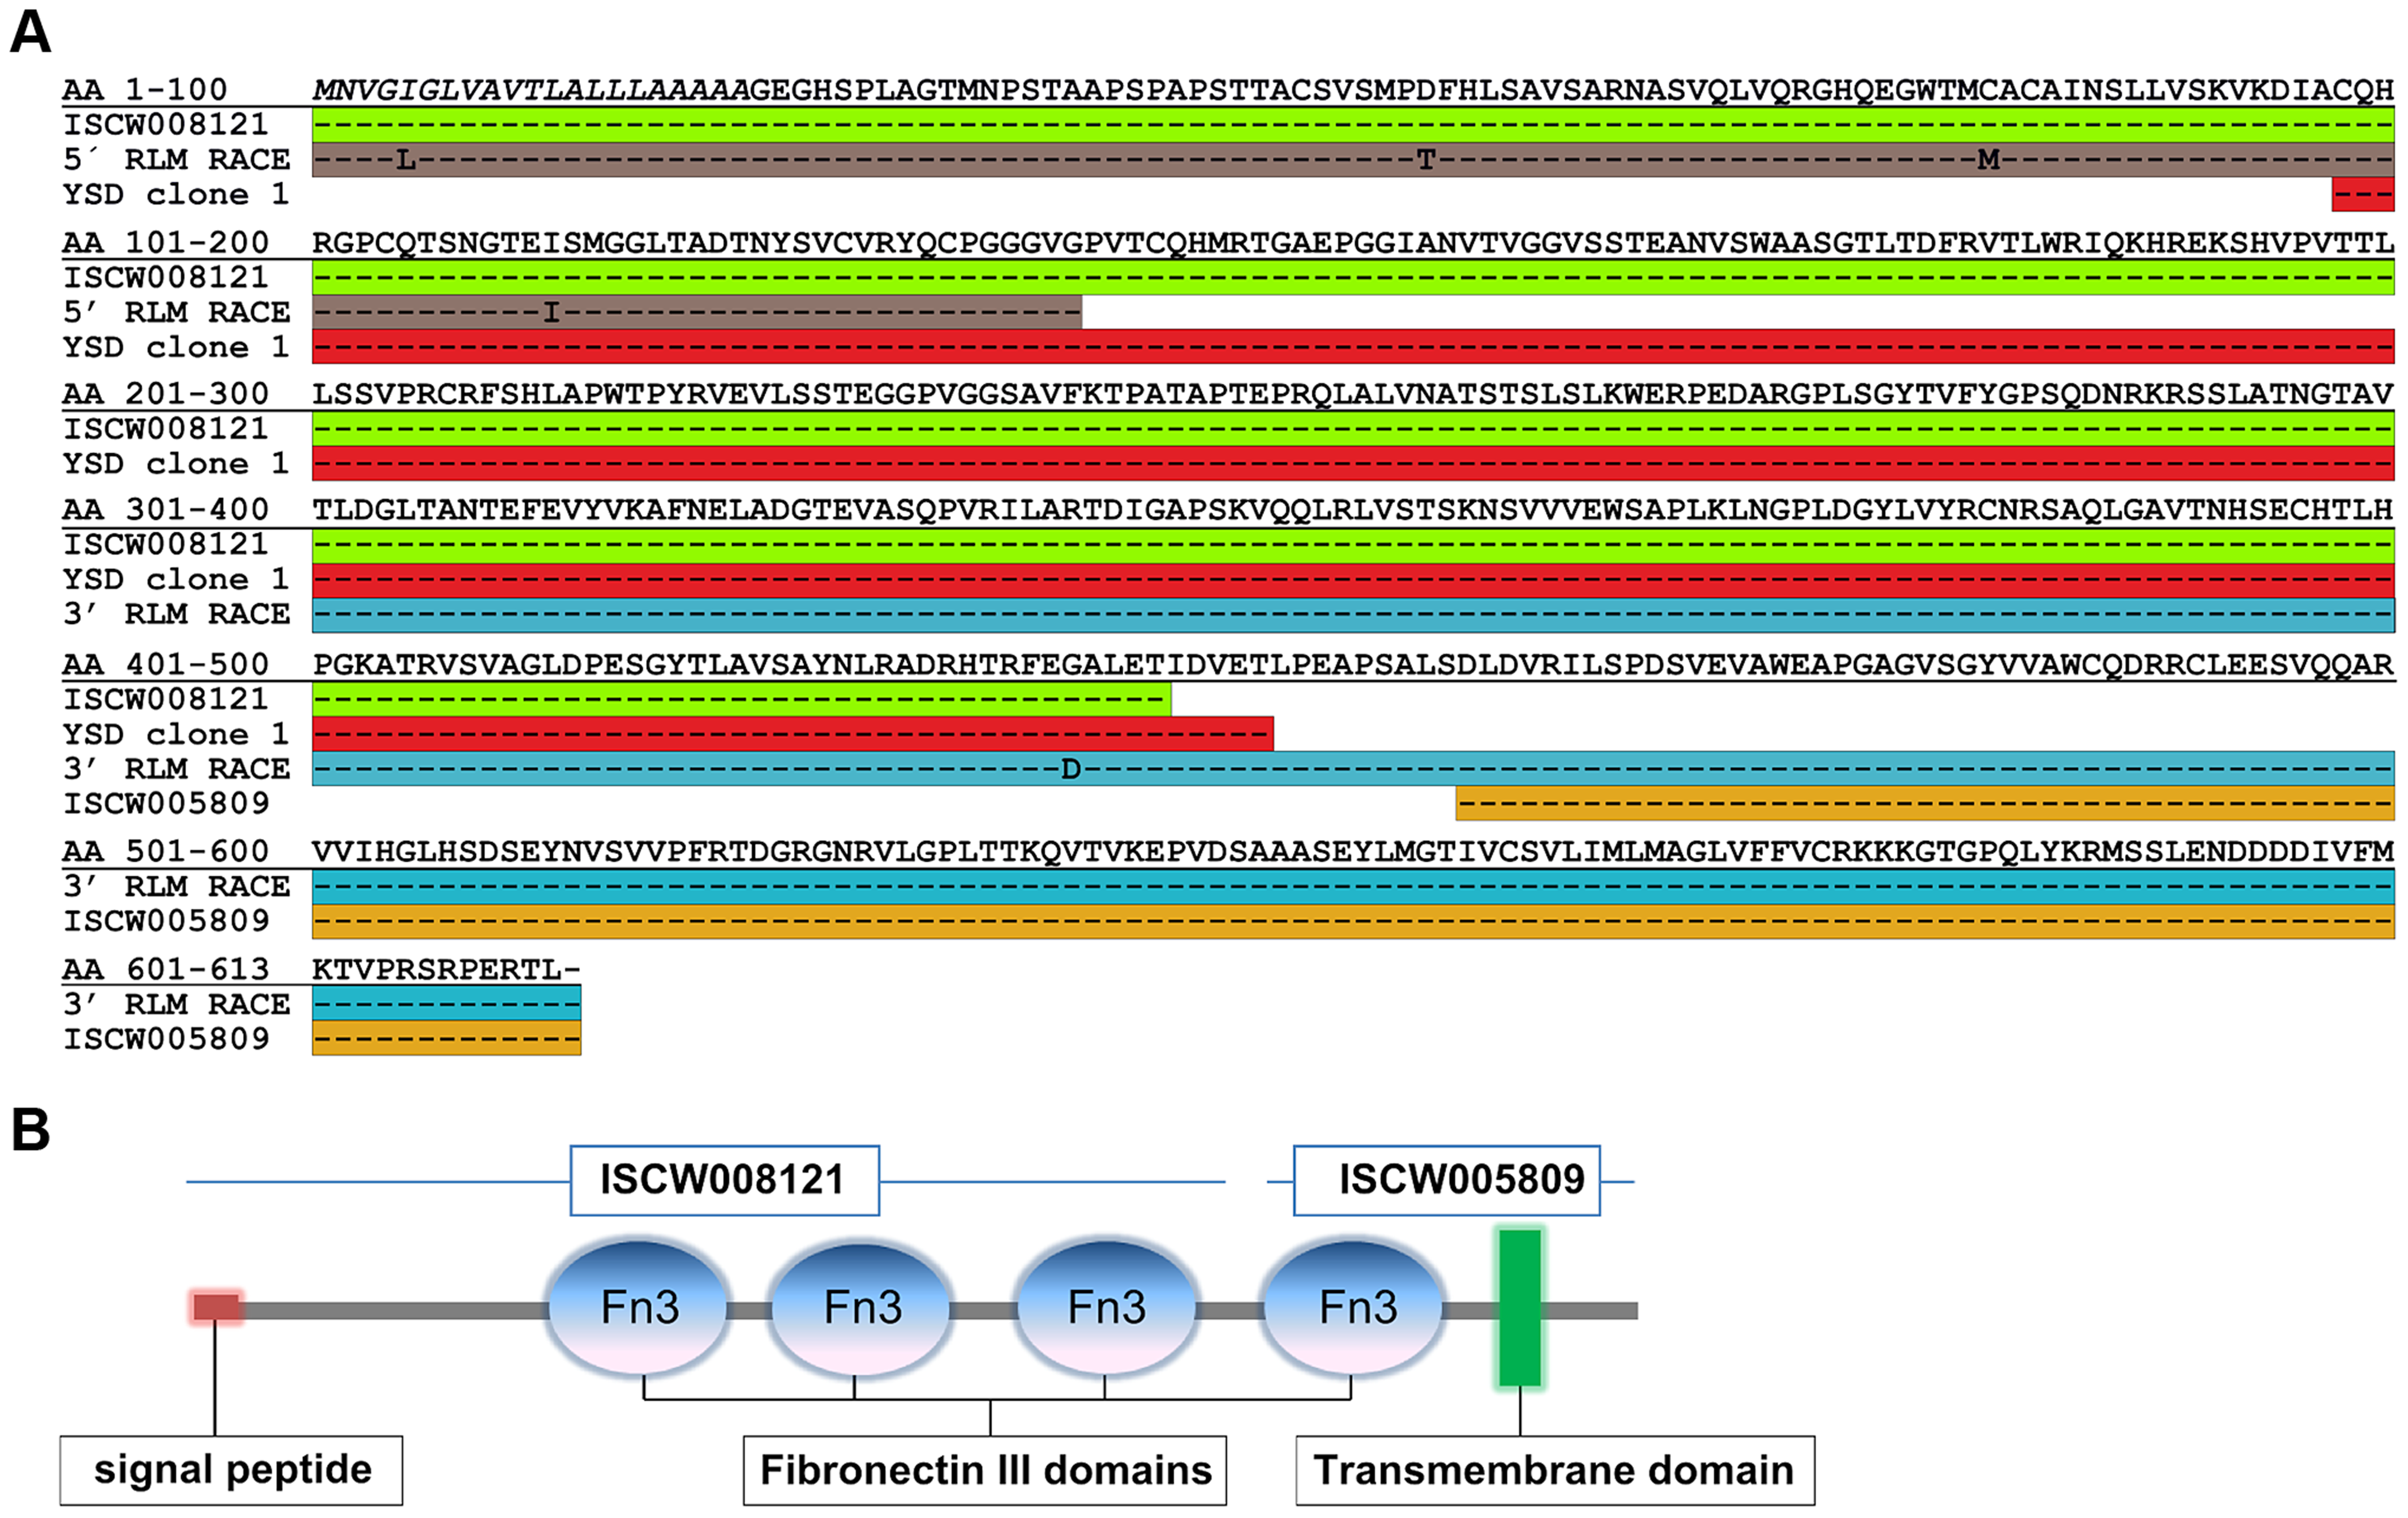 Full-length sequence of Ixofin3D (Genbank accession number KF709698).